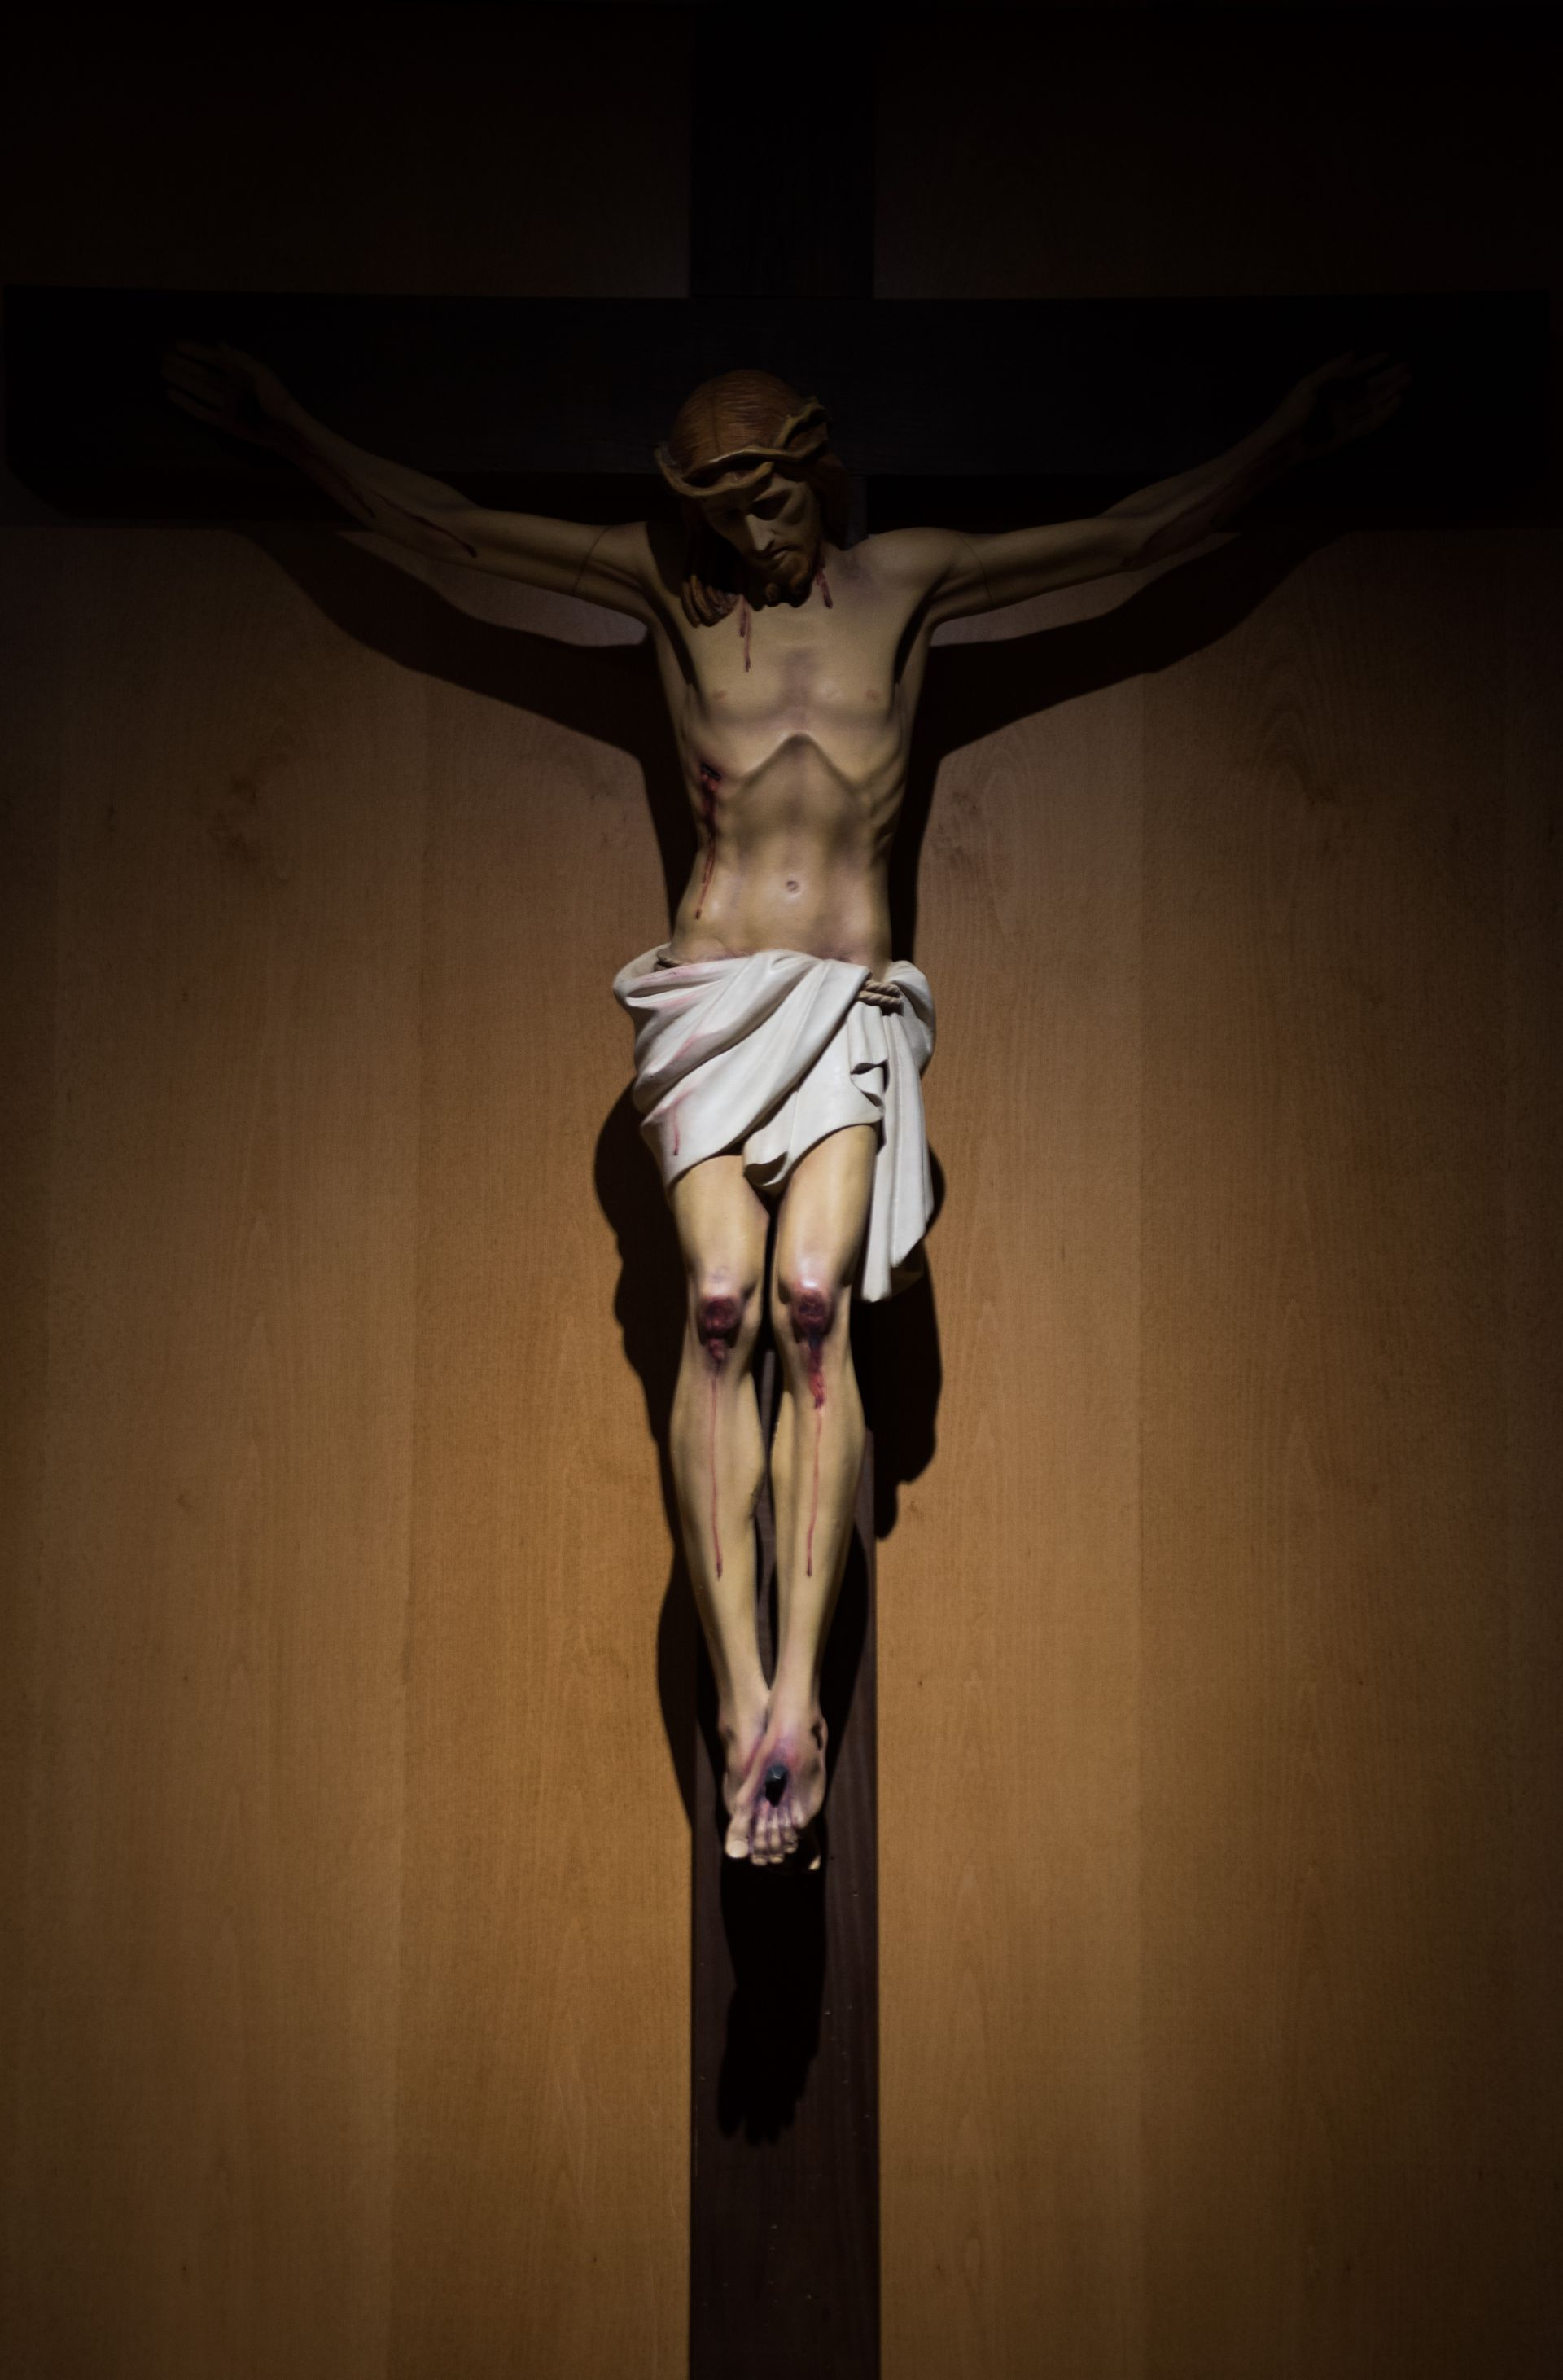 christ, jesus christ, crucifix, salvation, redemption, crucifixion, death, holy friday, easter